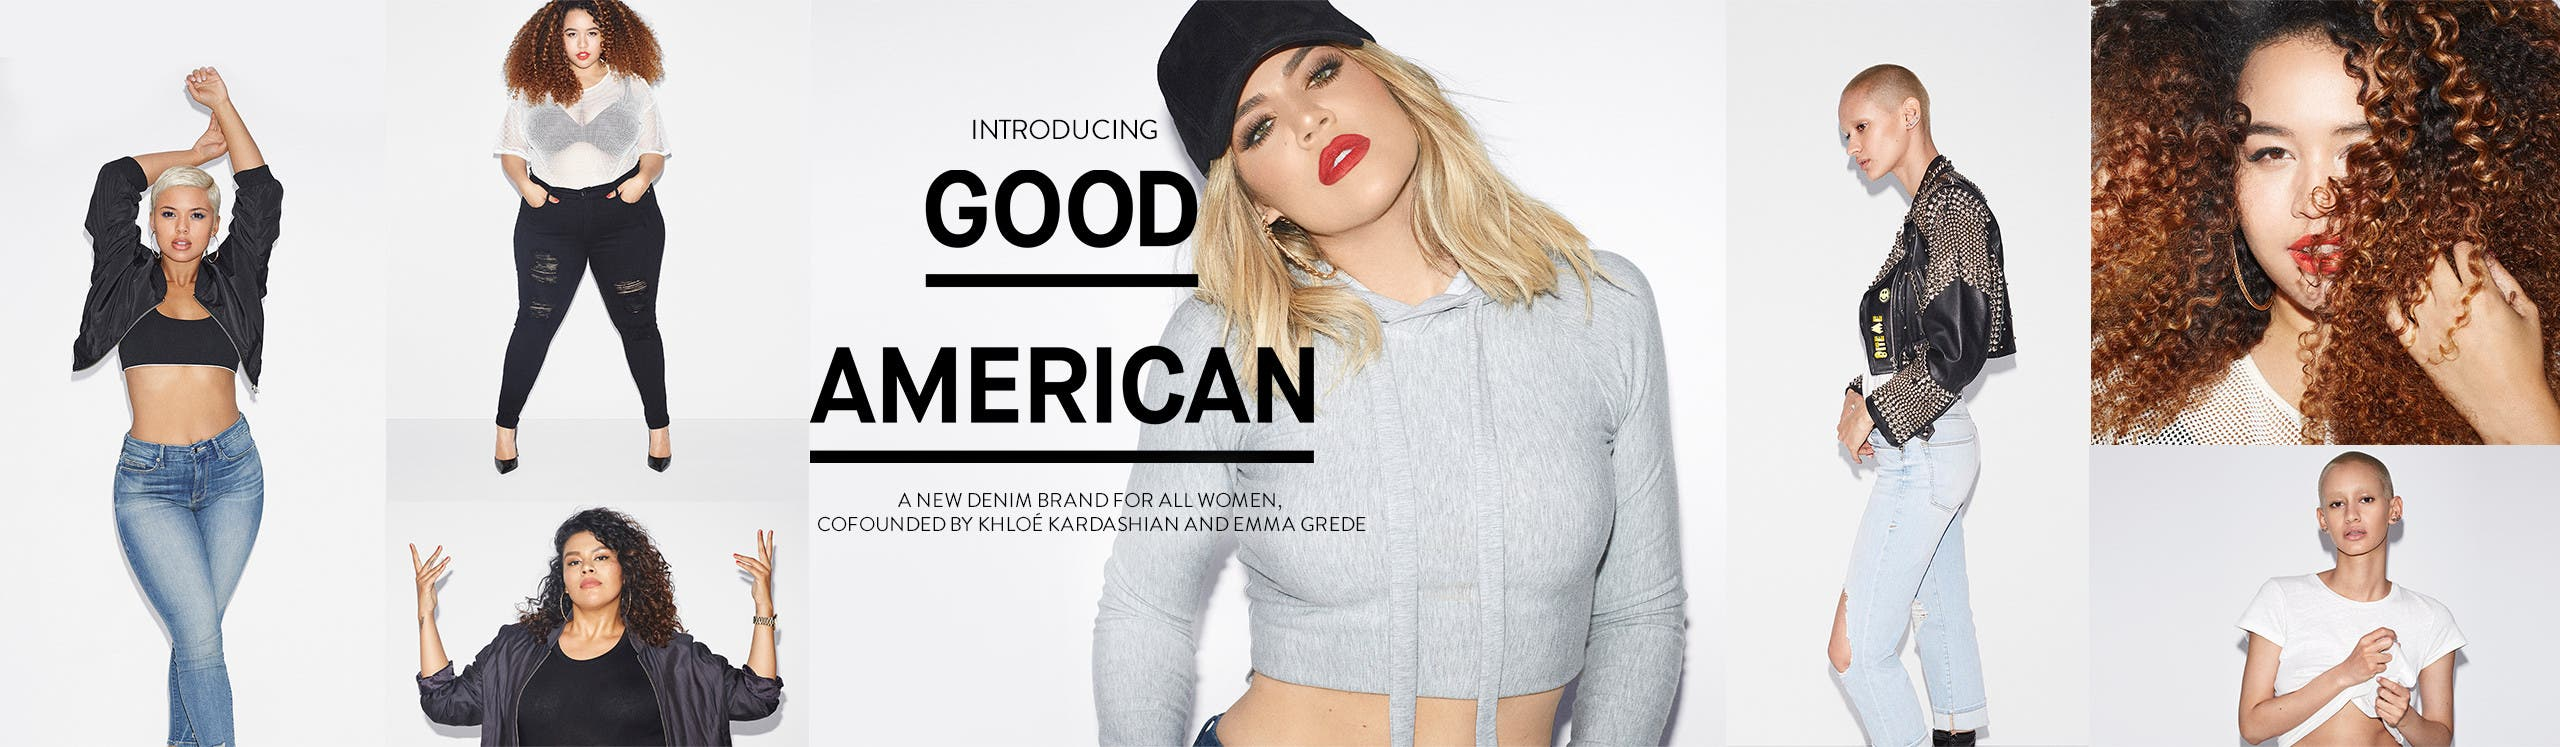 Introducing Good American women's jeans.